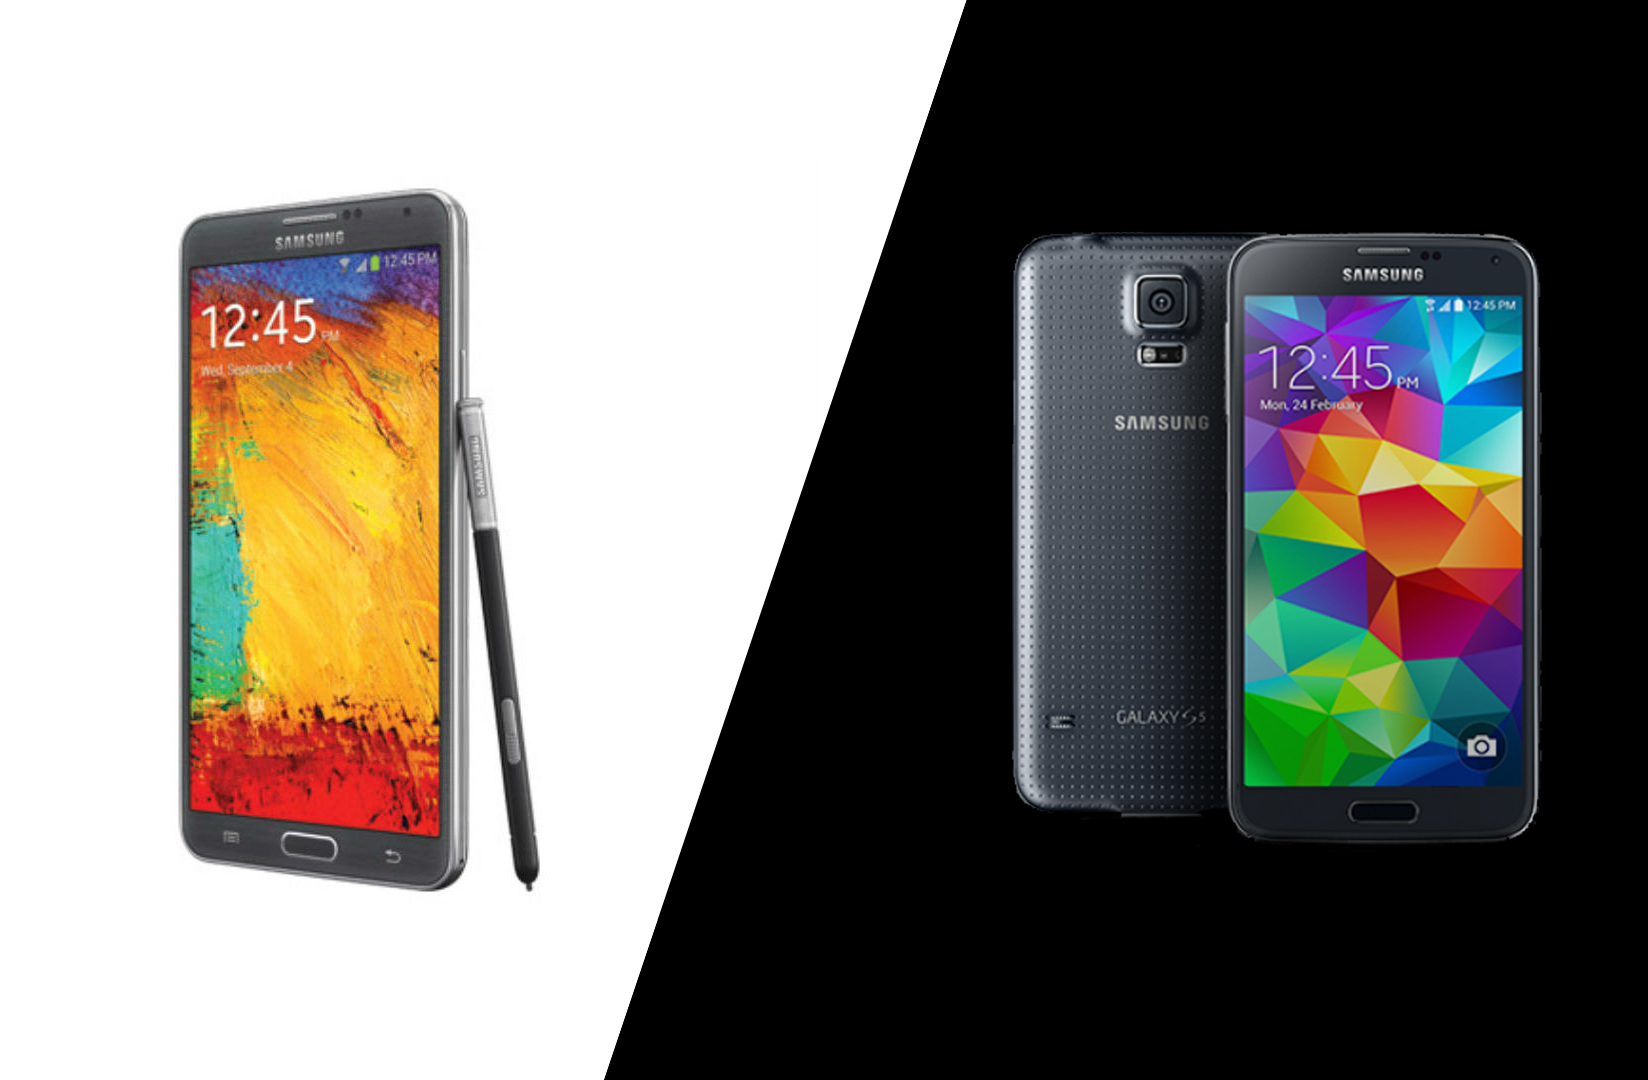 Samsung Galaxy S5 vs. Samsung Galaxy Note 3: Which is Better for Business?